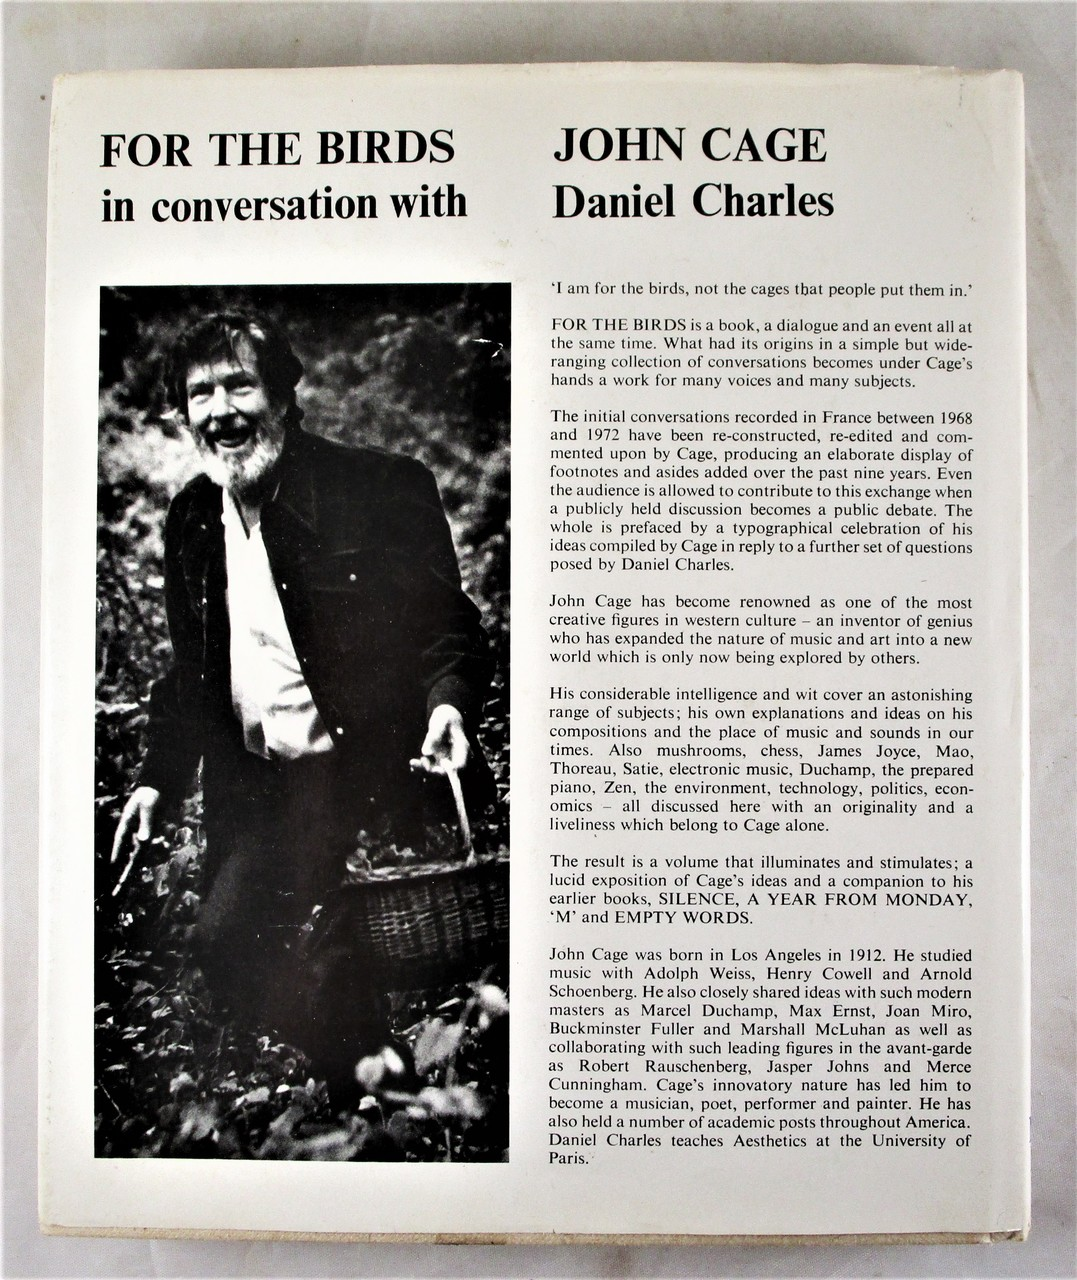 FOR THE BIRDS: John Cage in Conversation with Daniel Charles - 1981 [Signed]